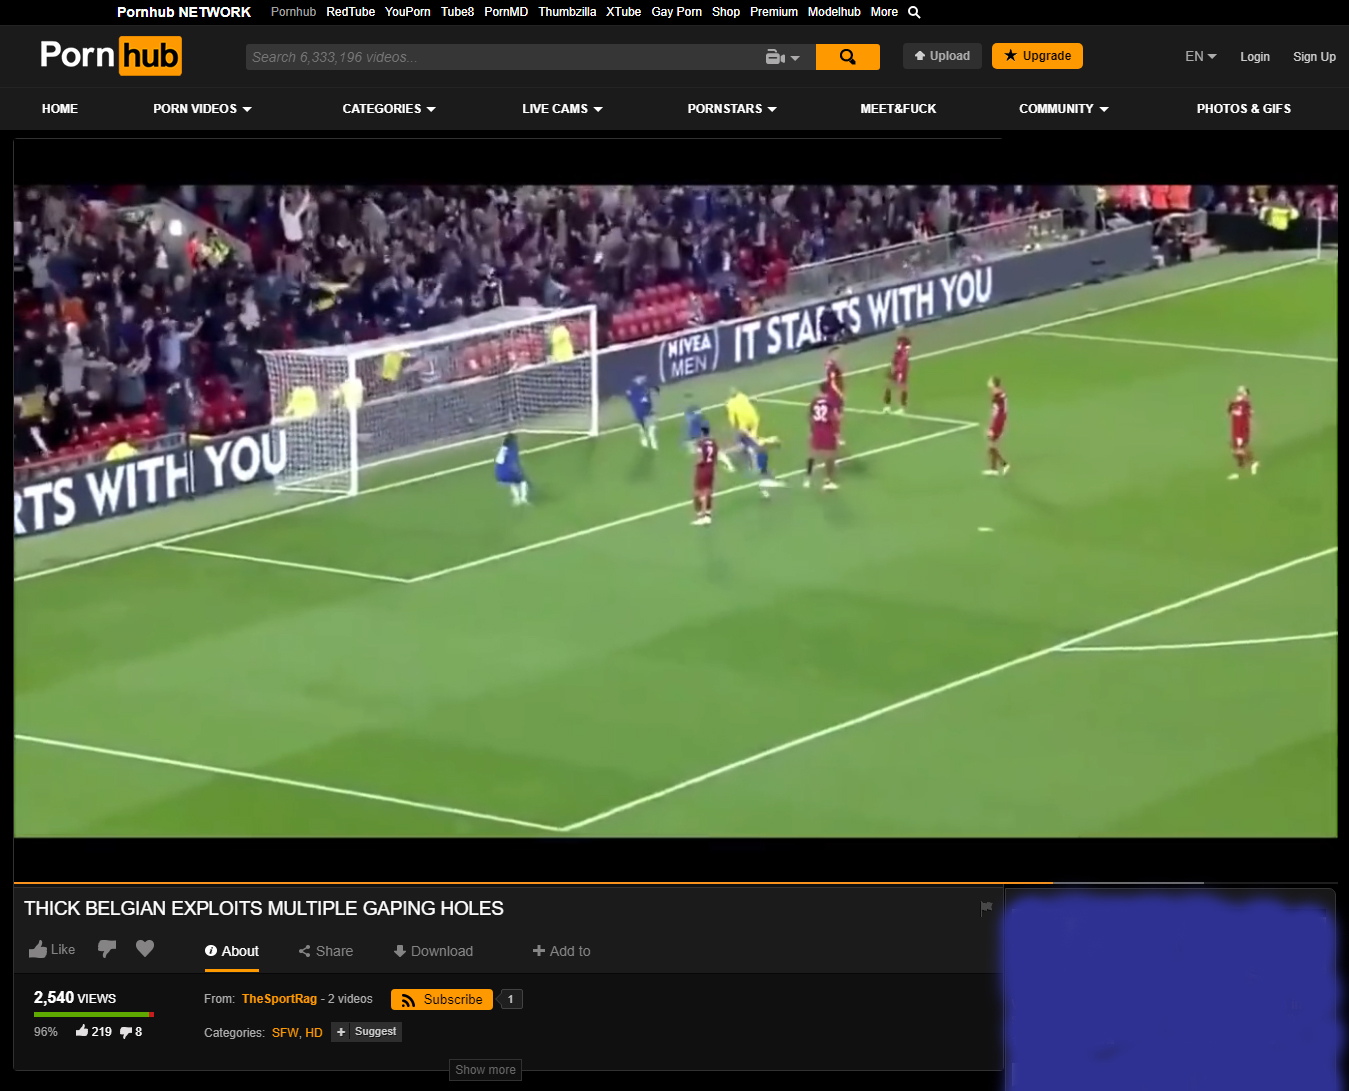 Eden Hazard's goal vs Liverpool so filthy it made it onto Pornhub